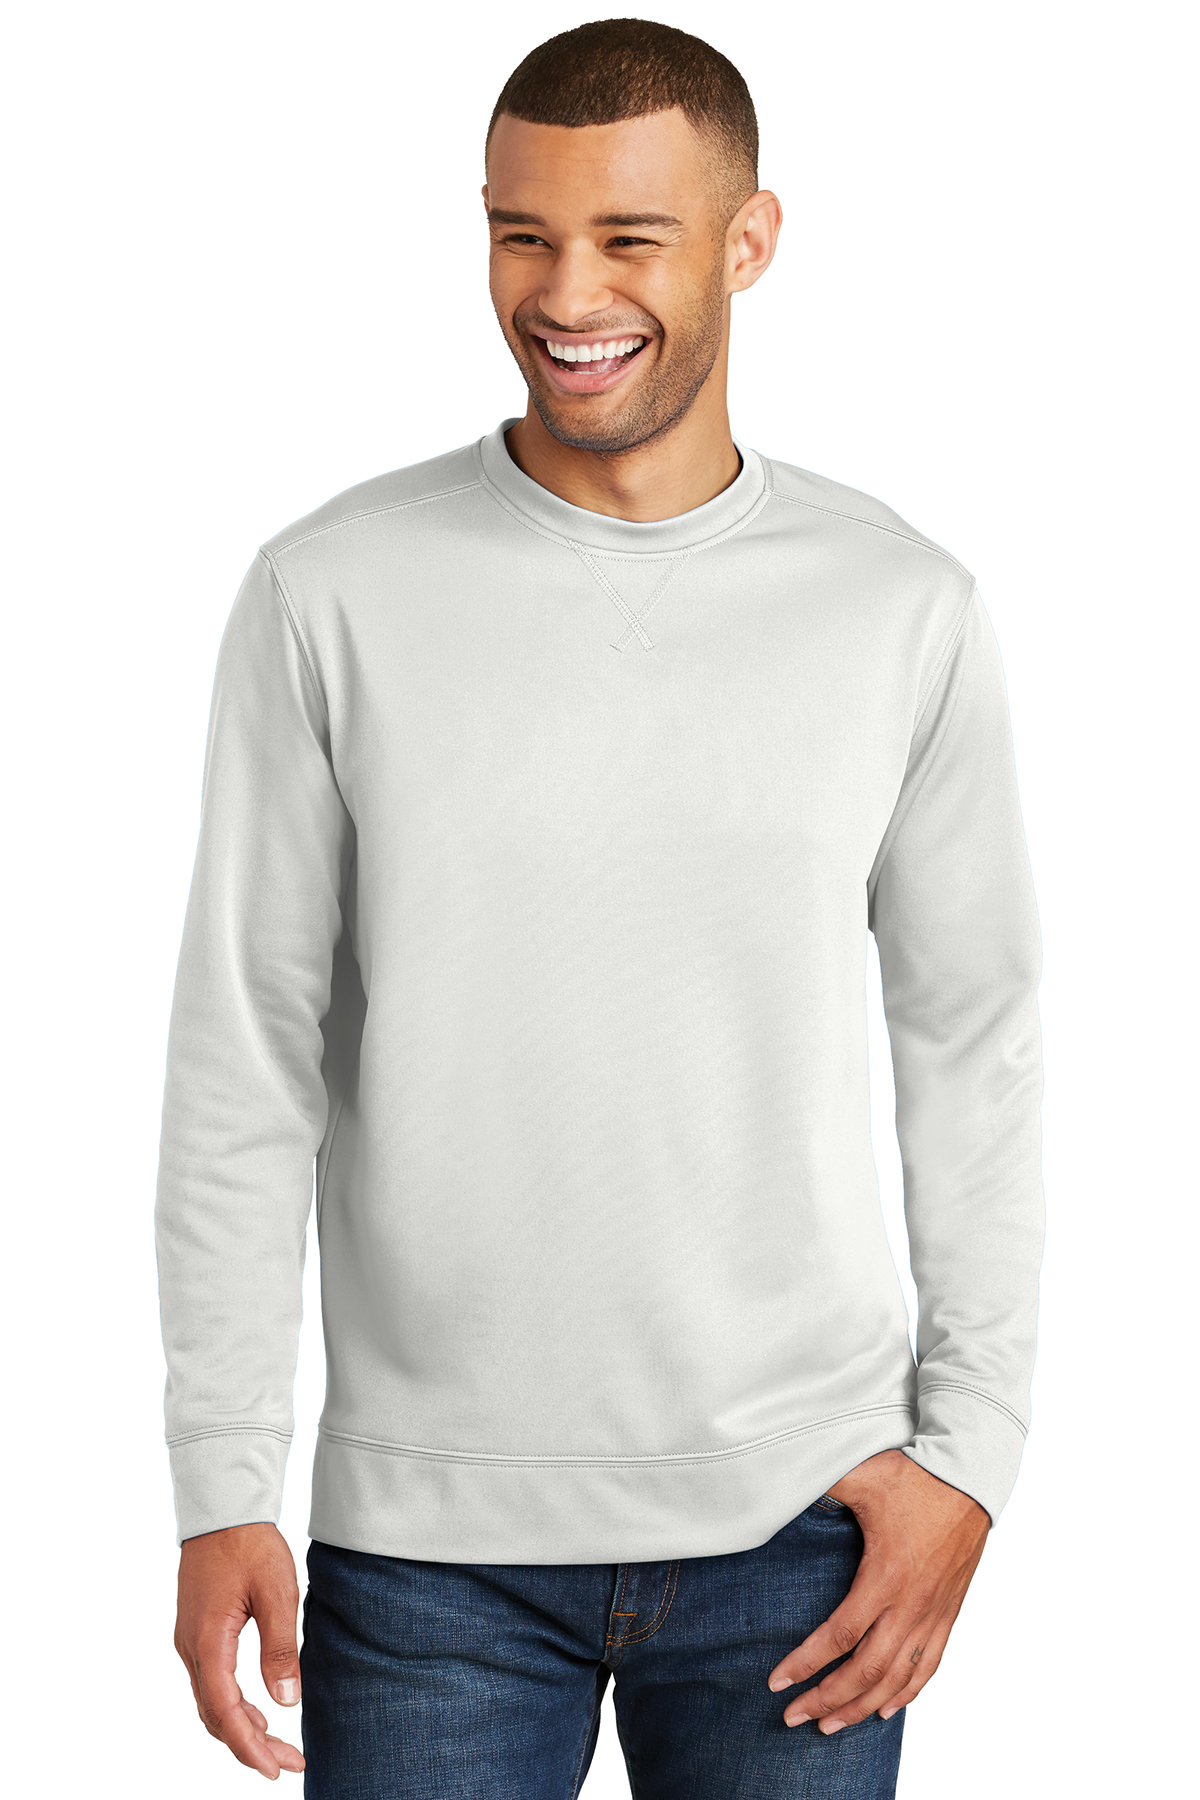 Port & Company PC590 - Performance Fleece Crewneck Sweatshirt